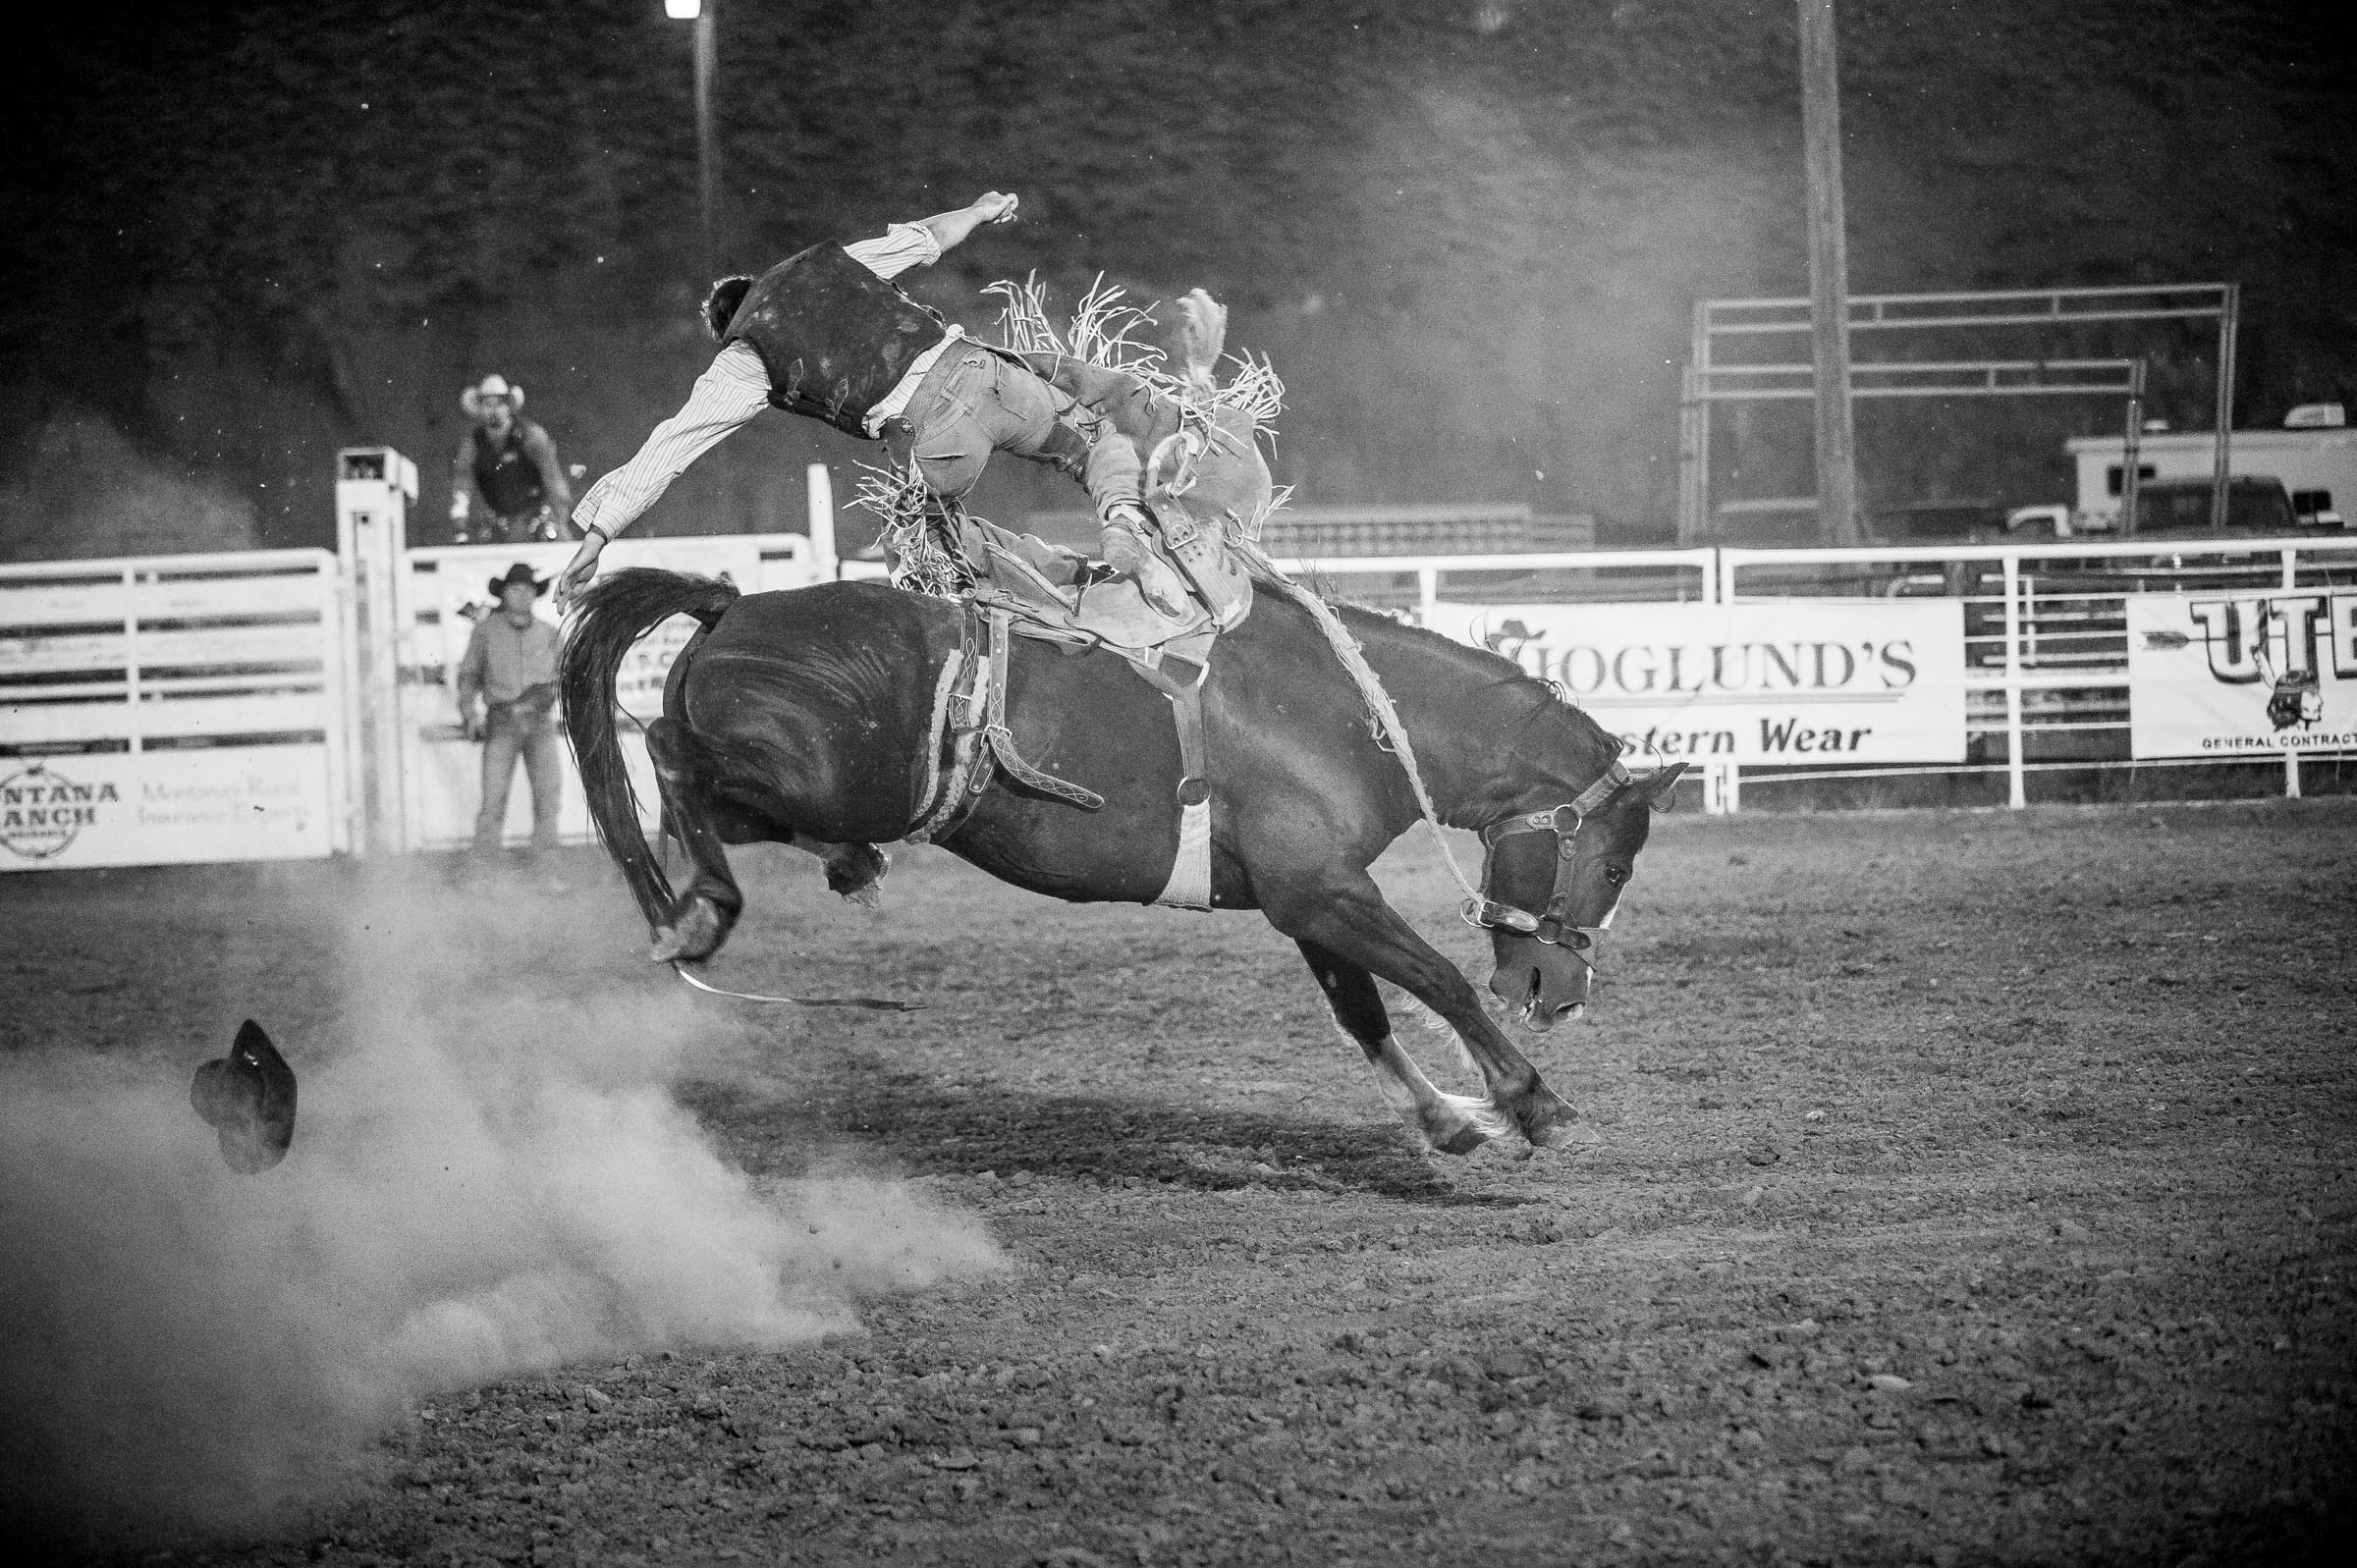 Saddle bronc rider getting thrown from horse. © Tony Bynum